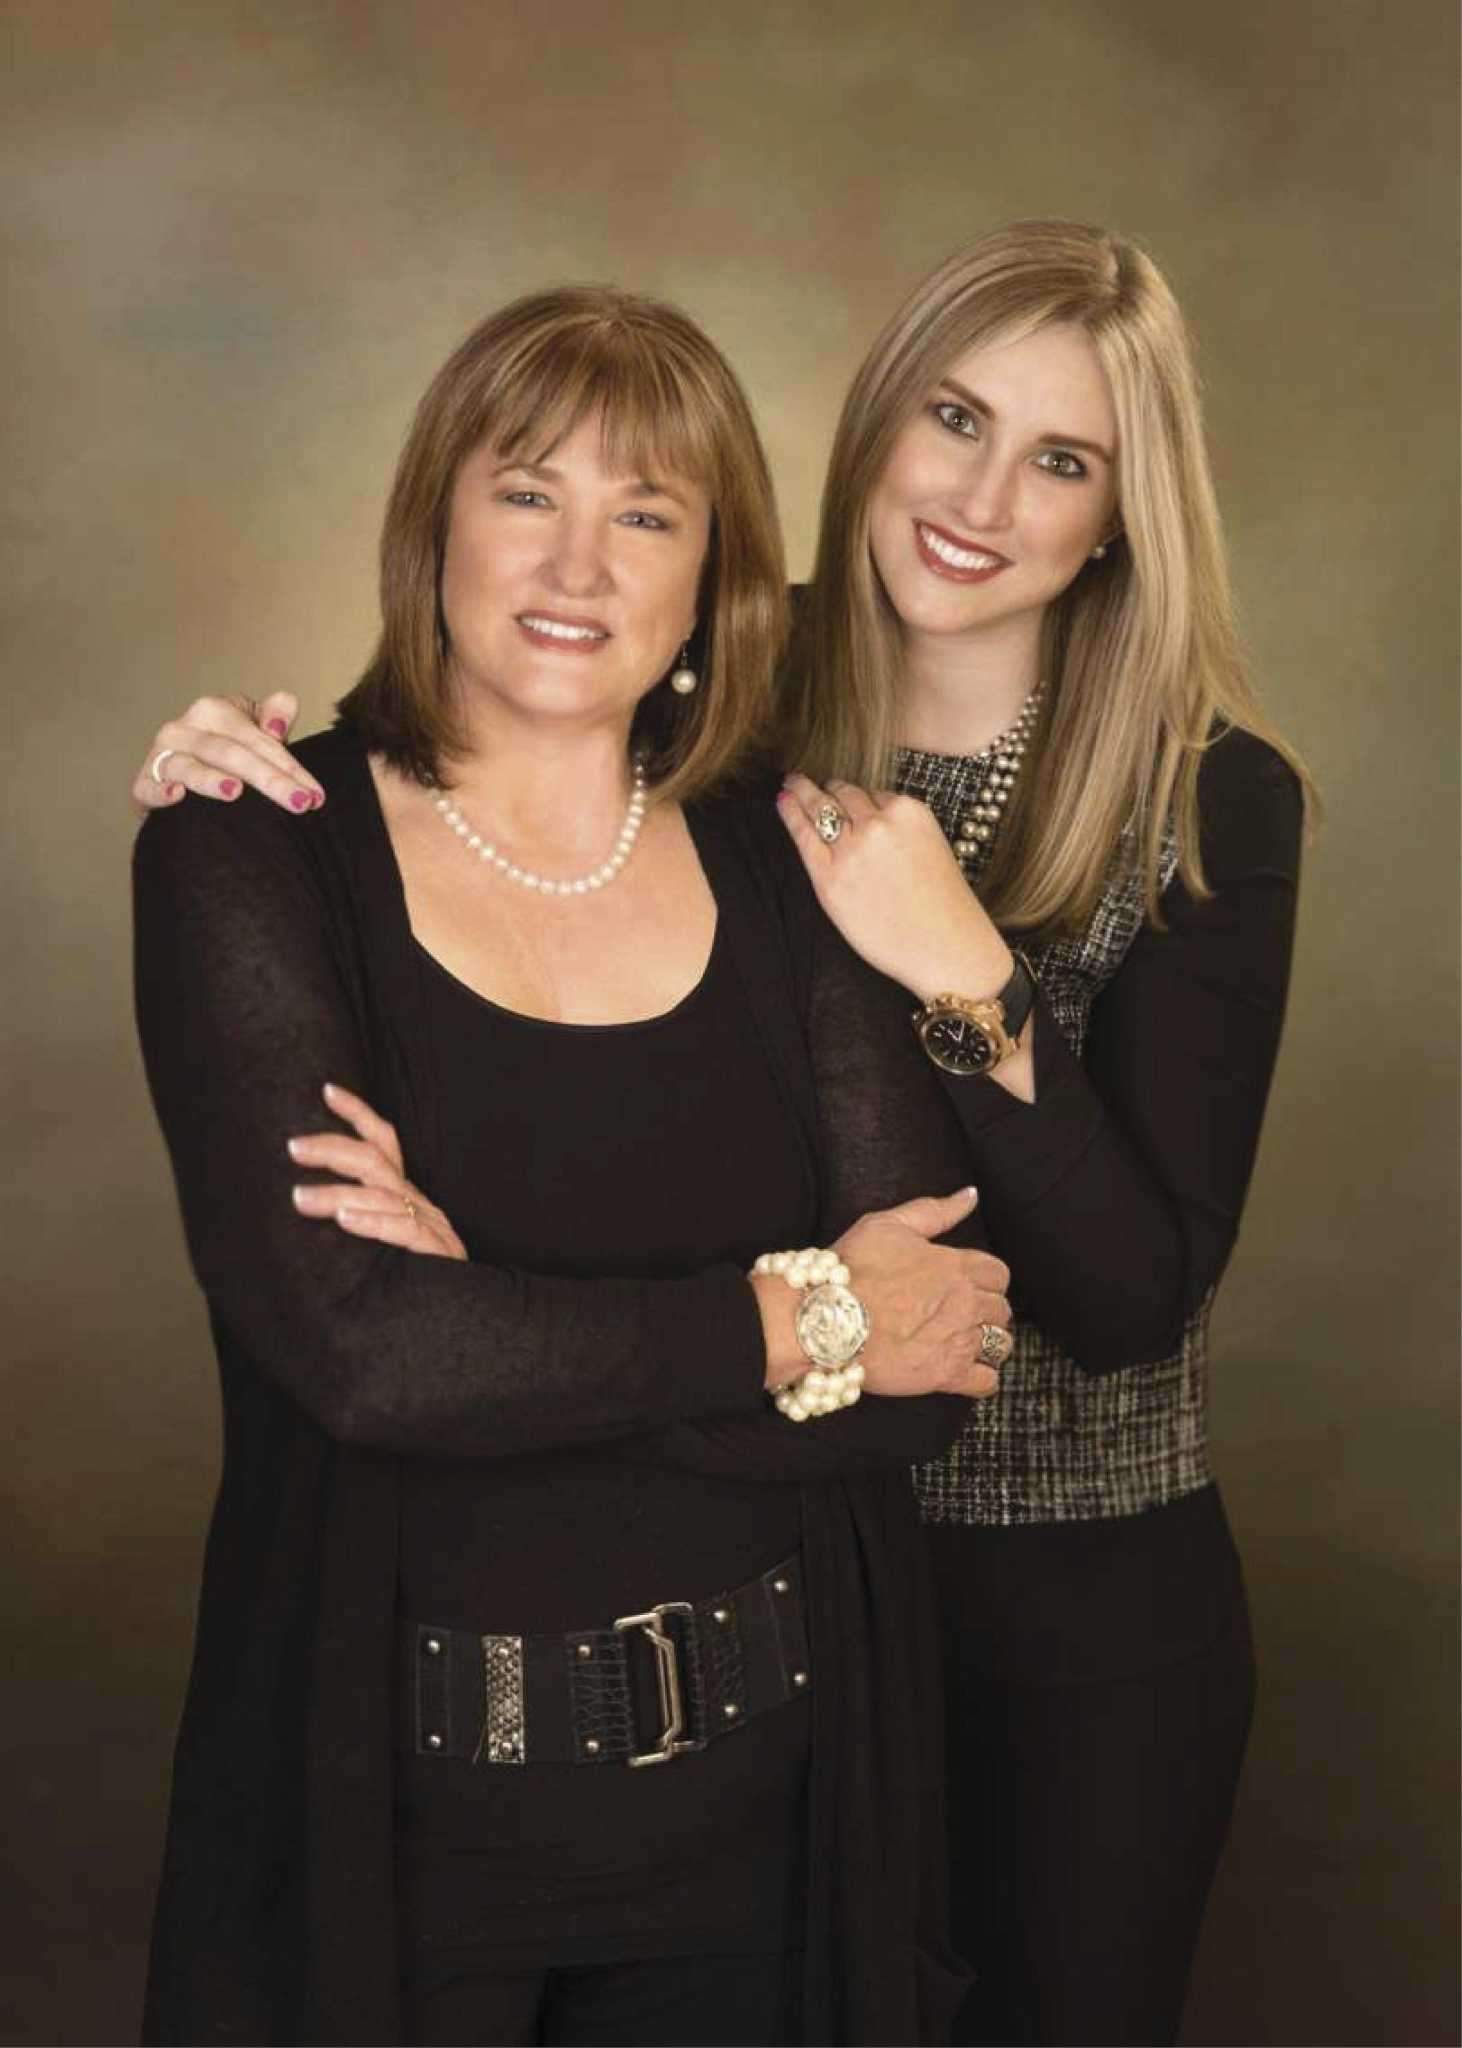 Realtors of the Week: Mother daughter form dynamic real estate duo